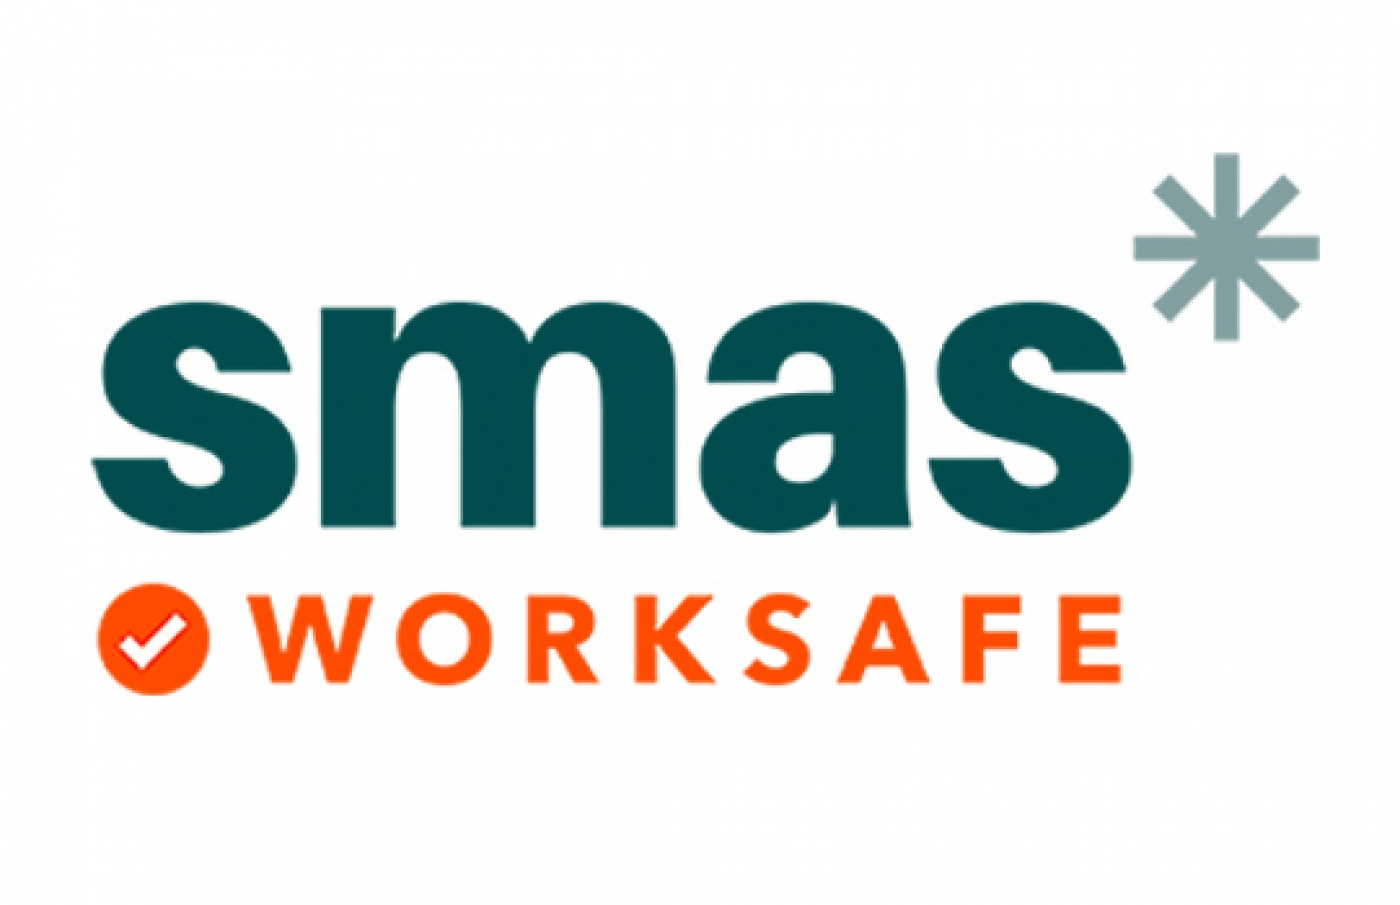 Earls Scaffolding has been accredited by SMAS